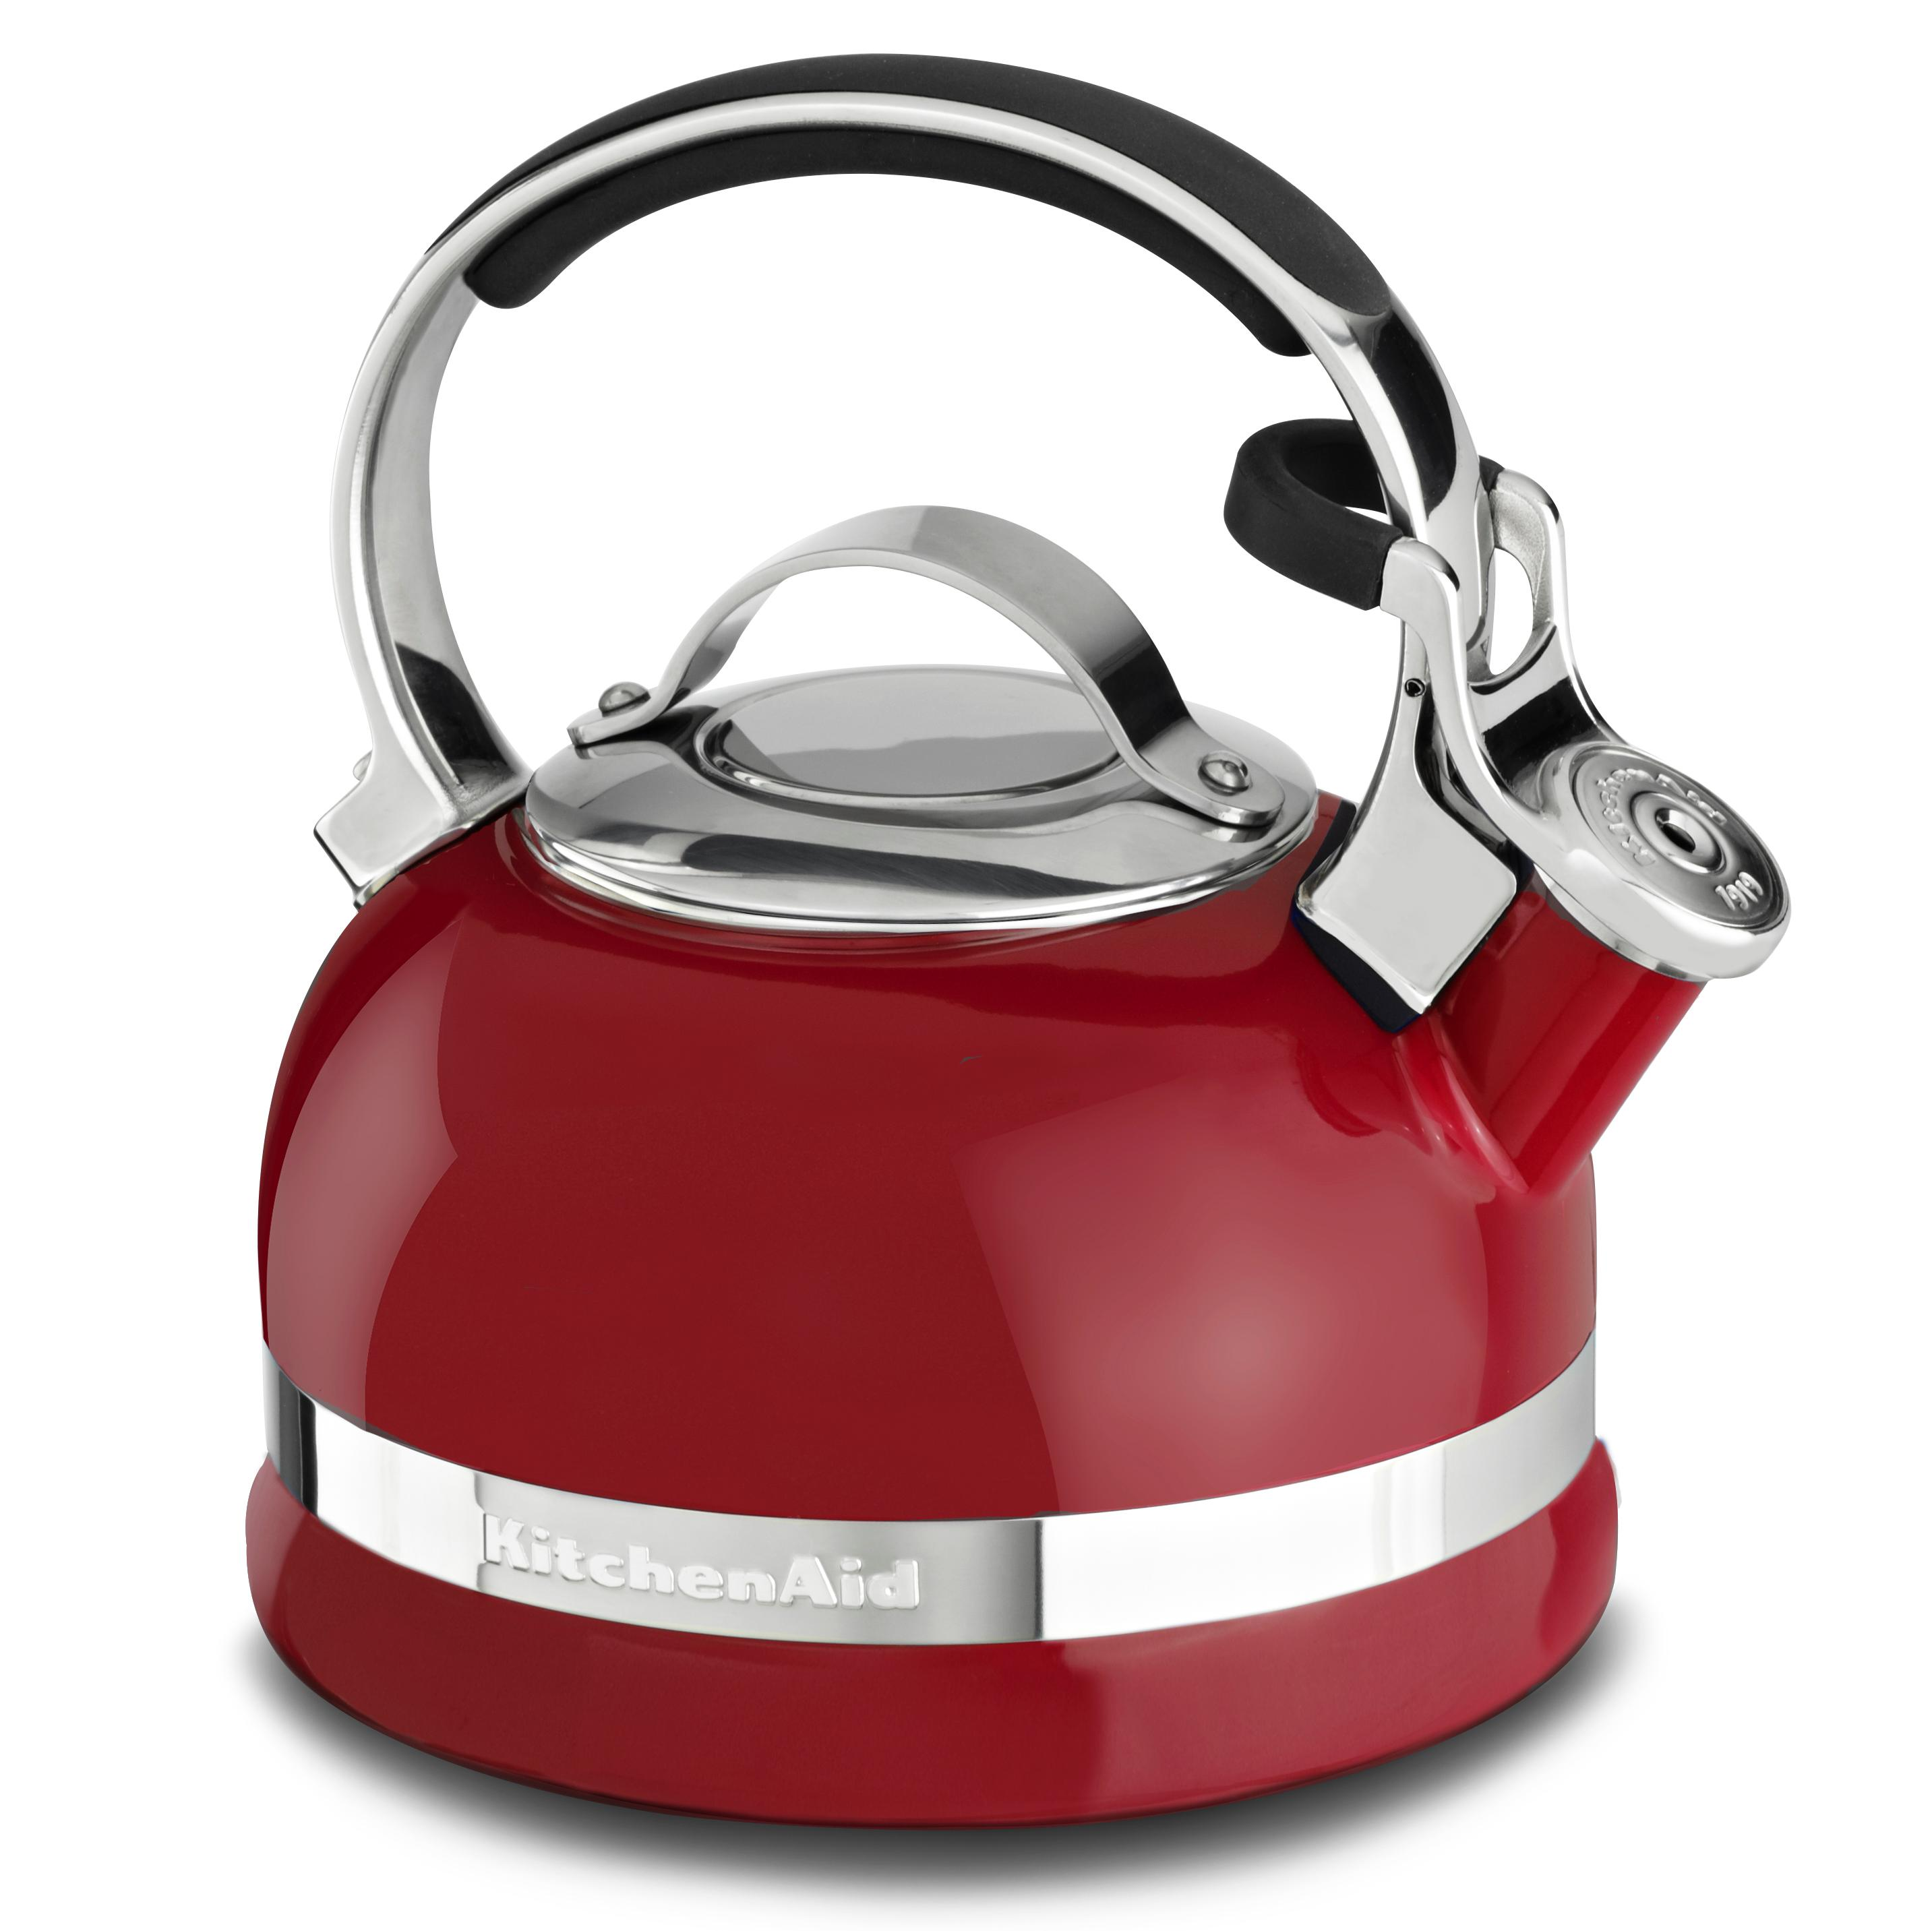 Amazon.com: KitchenAid KTEN20CBOB 2.0-Quart Kettle with C Handle ...